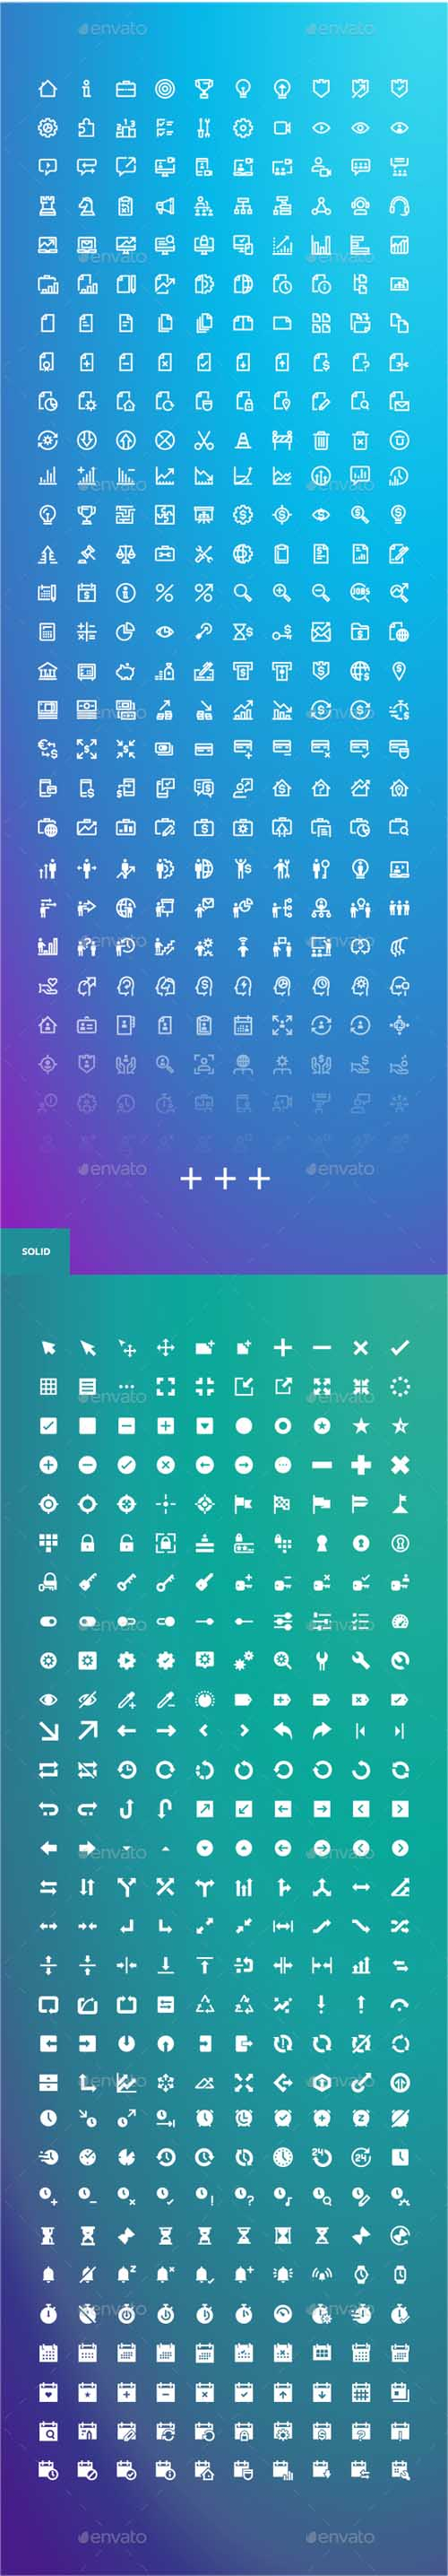 GR - Material Design Icons 19371715